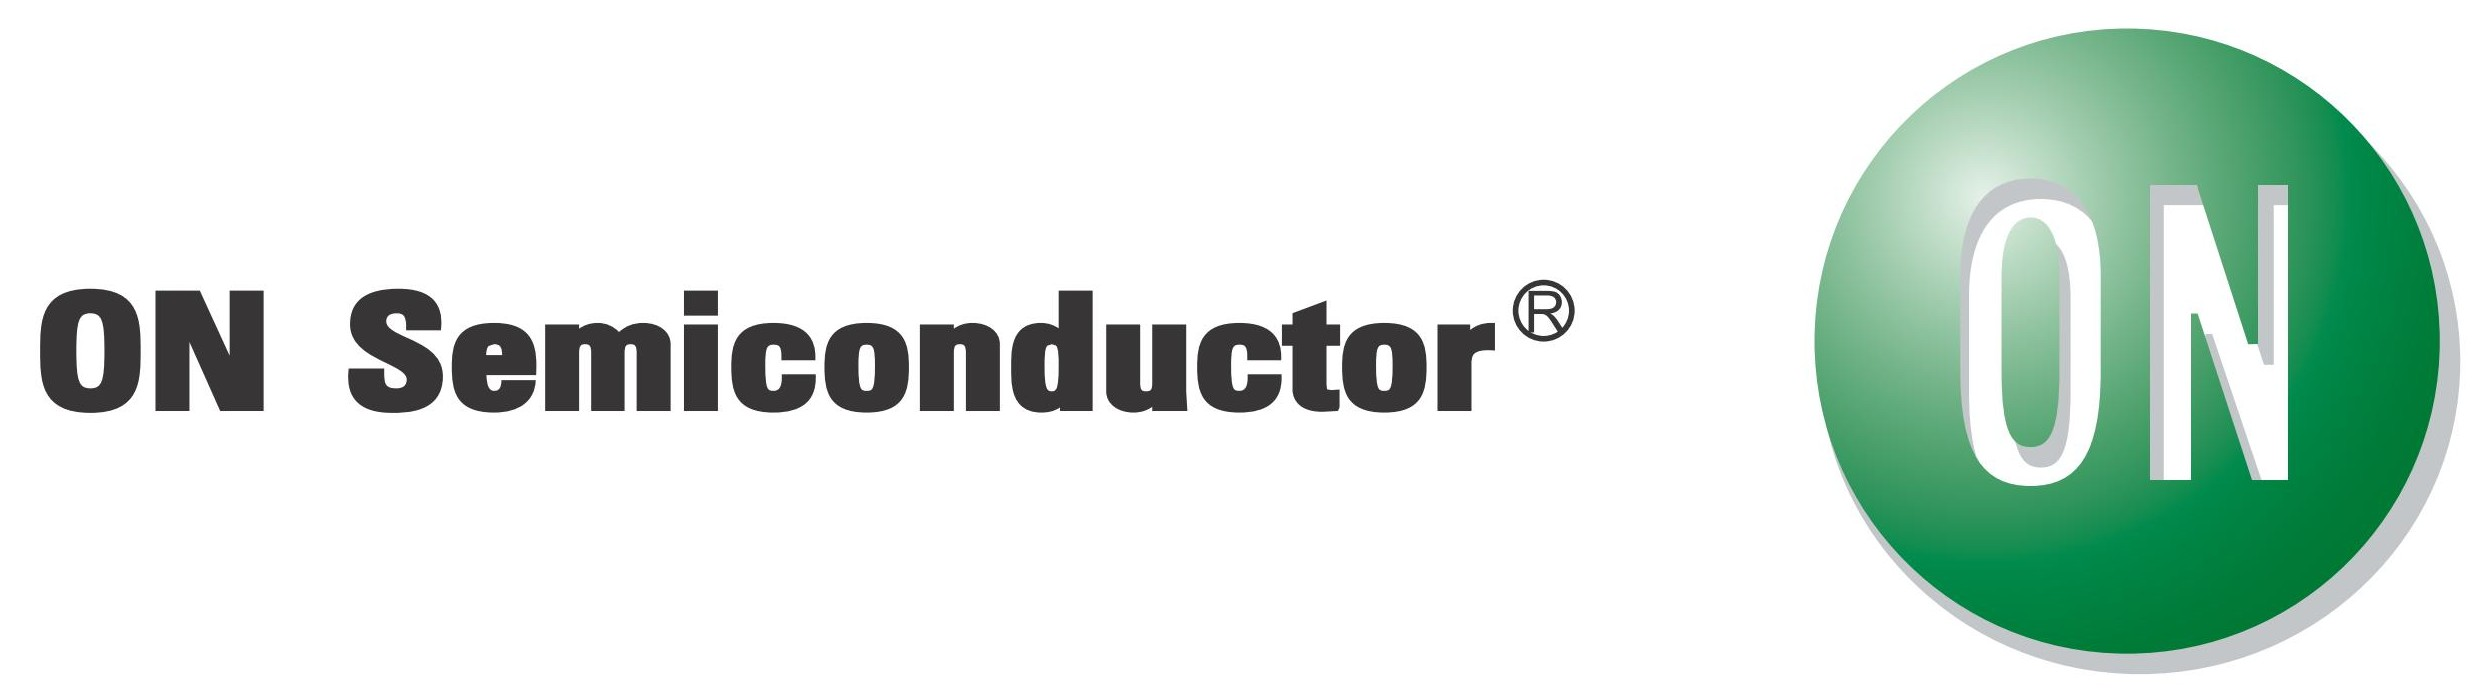 ON_Semiconductor-Logo.jpg